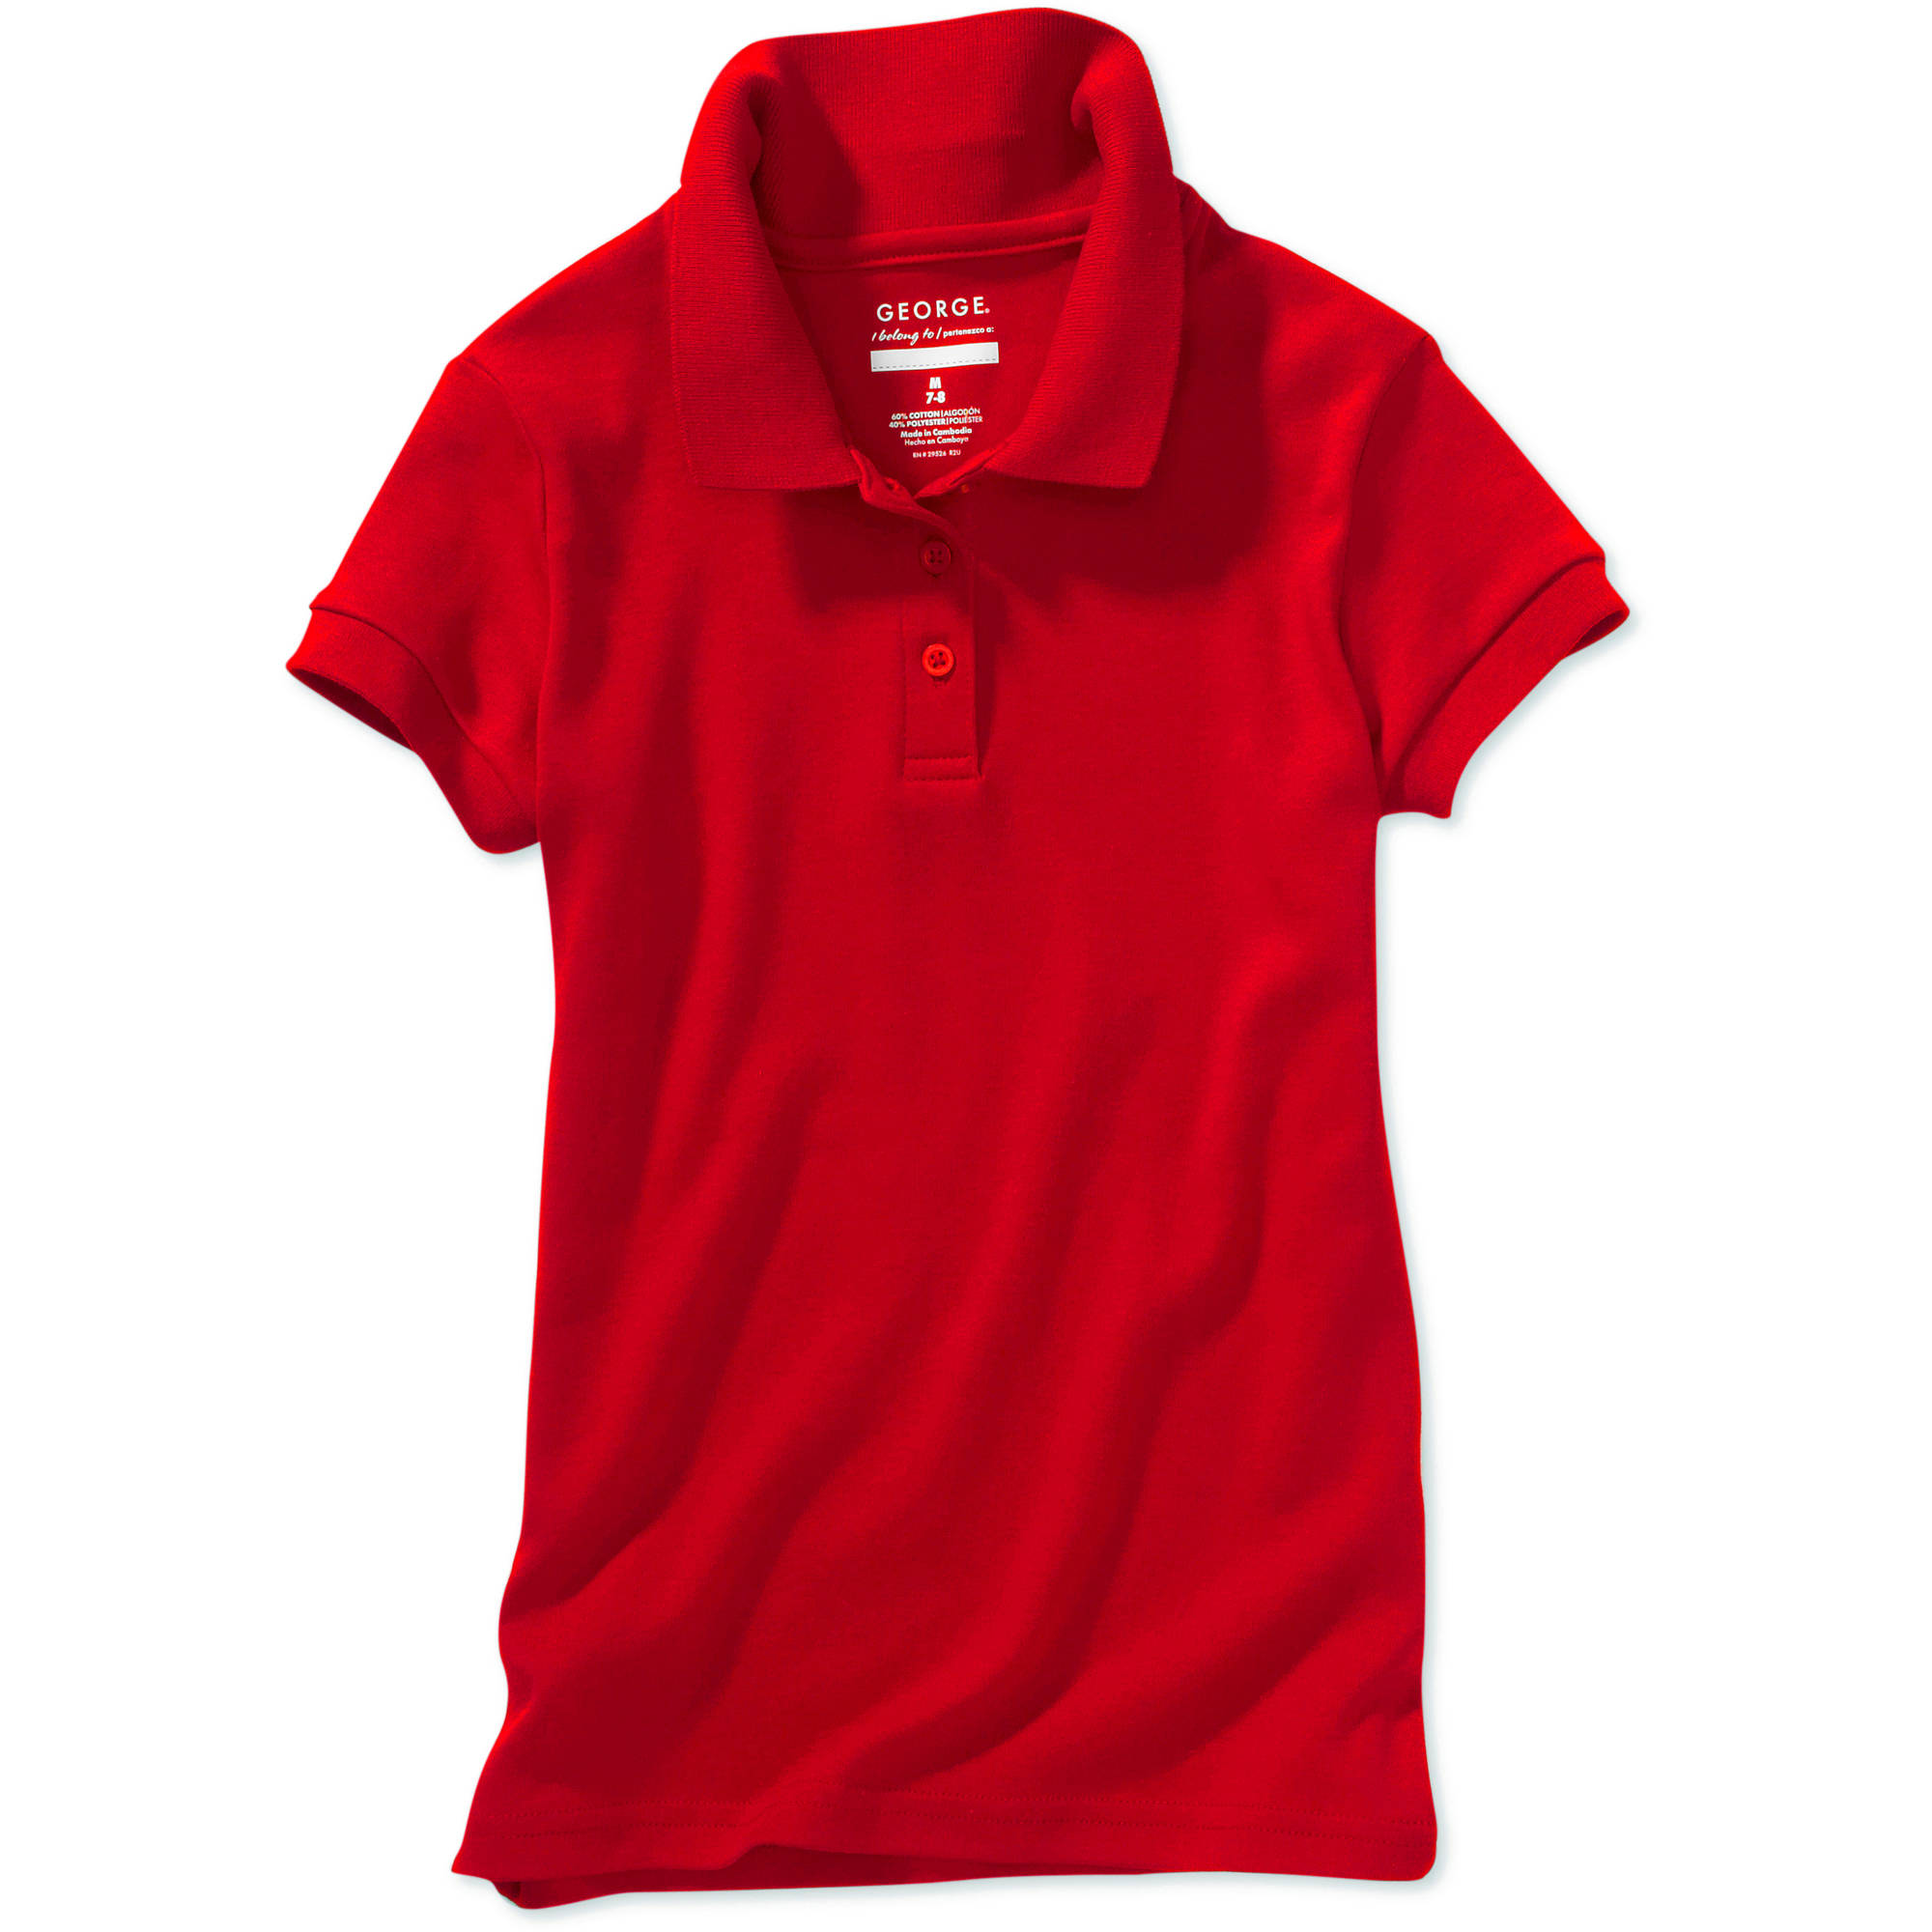 George Girls' School Uniform Short Sleeve Polo Shirt with Scotchgard